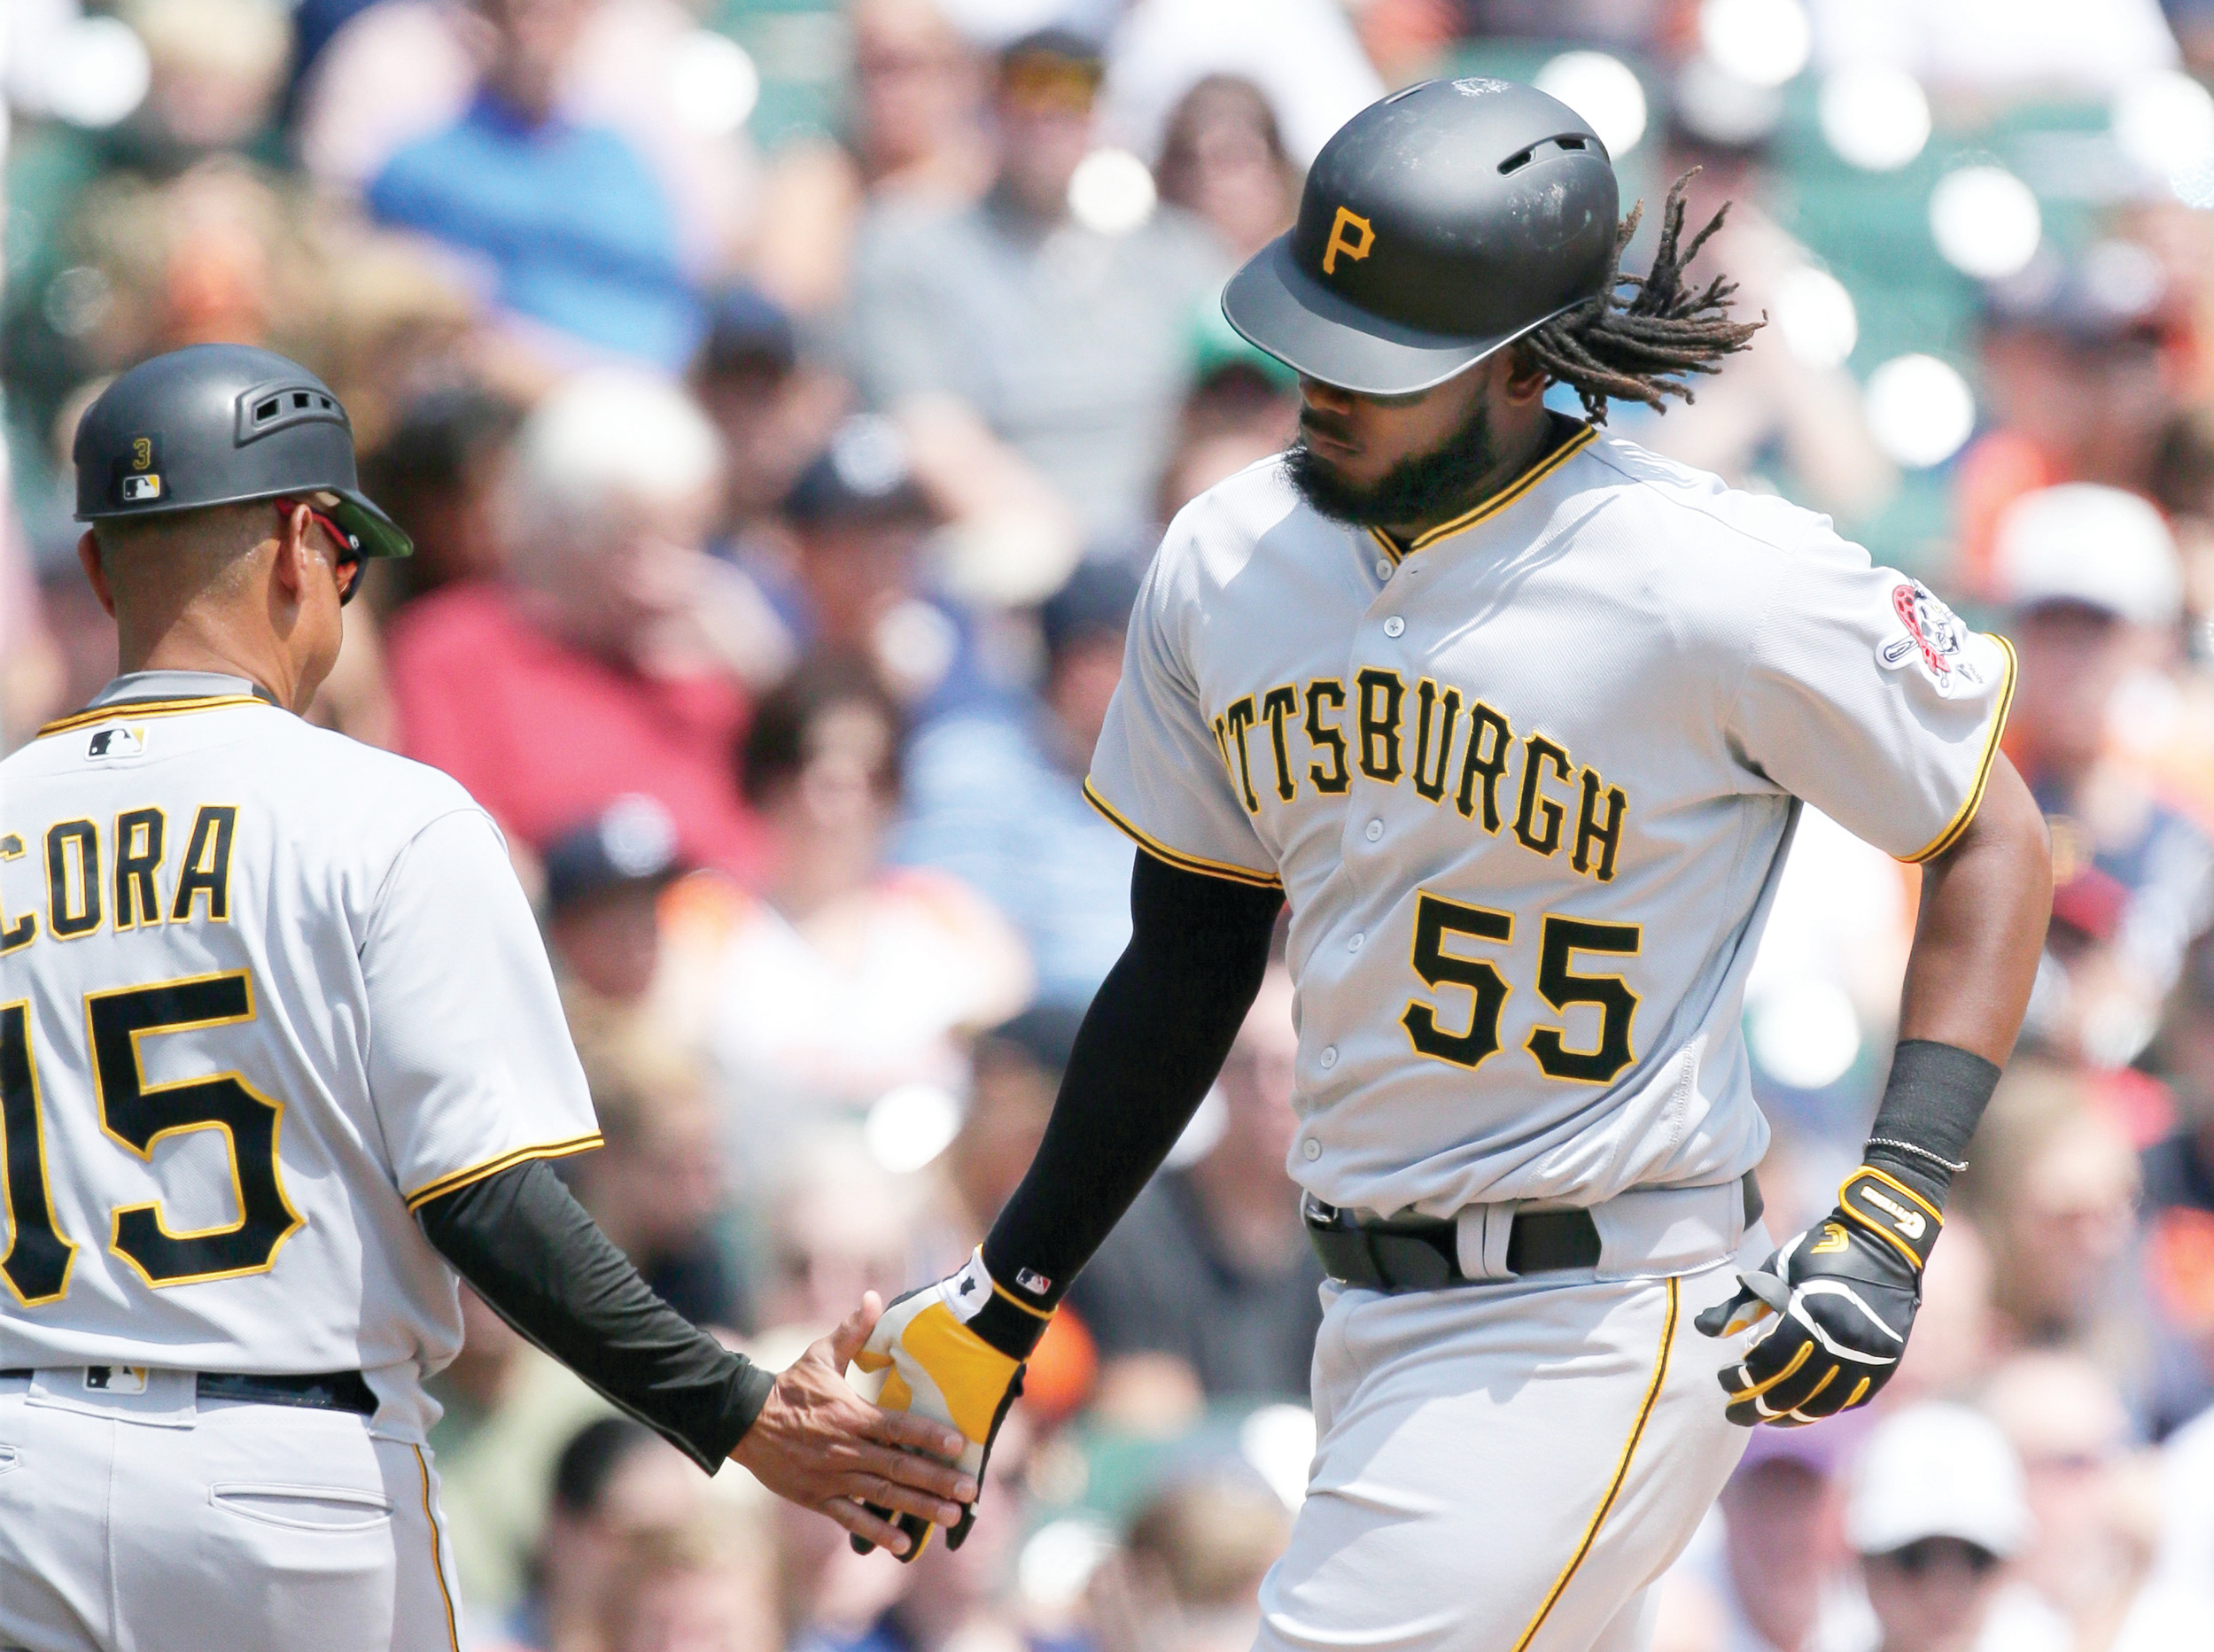 Pittsburgh's Josh Bell (55) is congratulated by third base coach Joey Cora (15) after hitting a 2-run home run against Detroit on Thursday during the Pirates' 7-5 victory in Detroit.